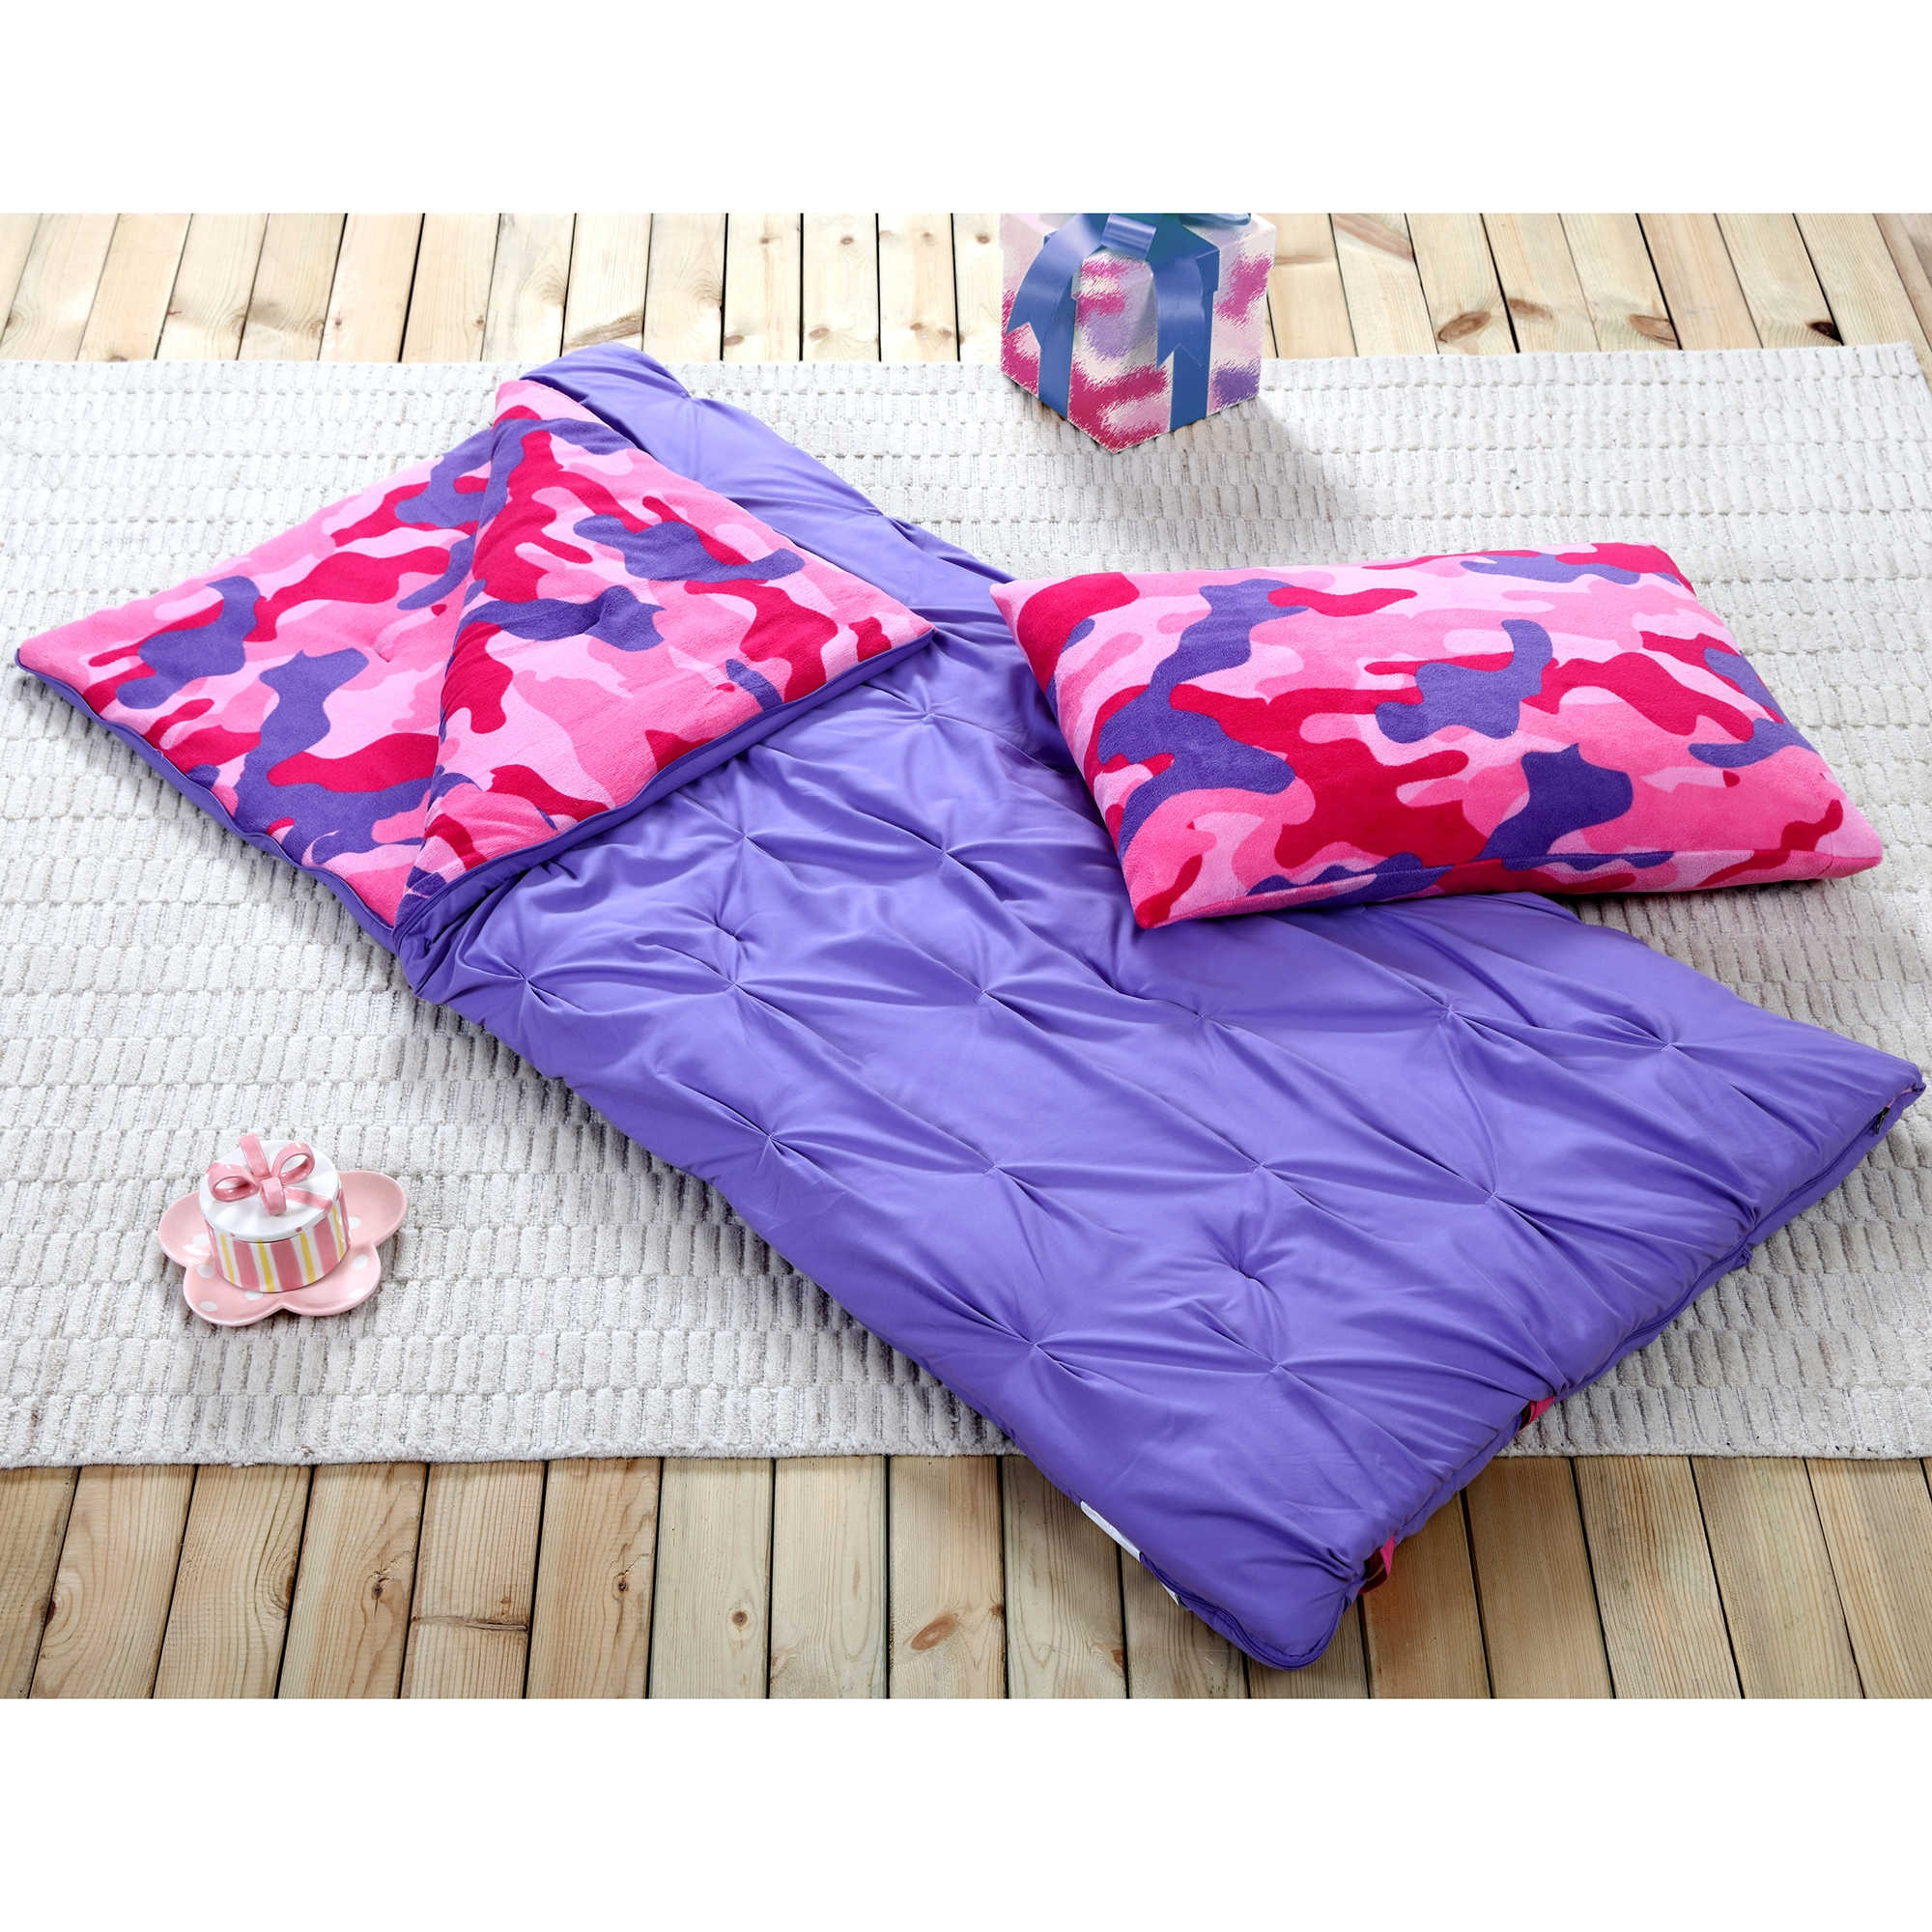 Sleeping Bag and Pillow Cover, Purple Pink Camo Indoor Outdoor Camping Youth Kids Girls by